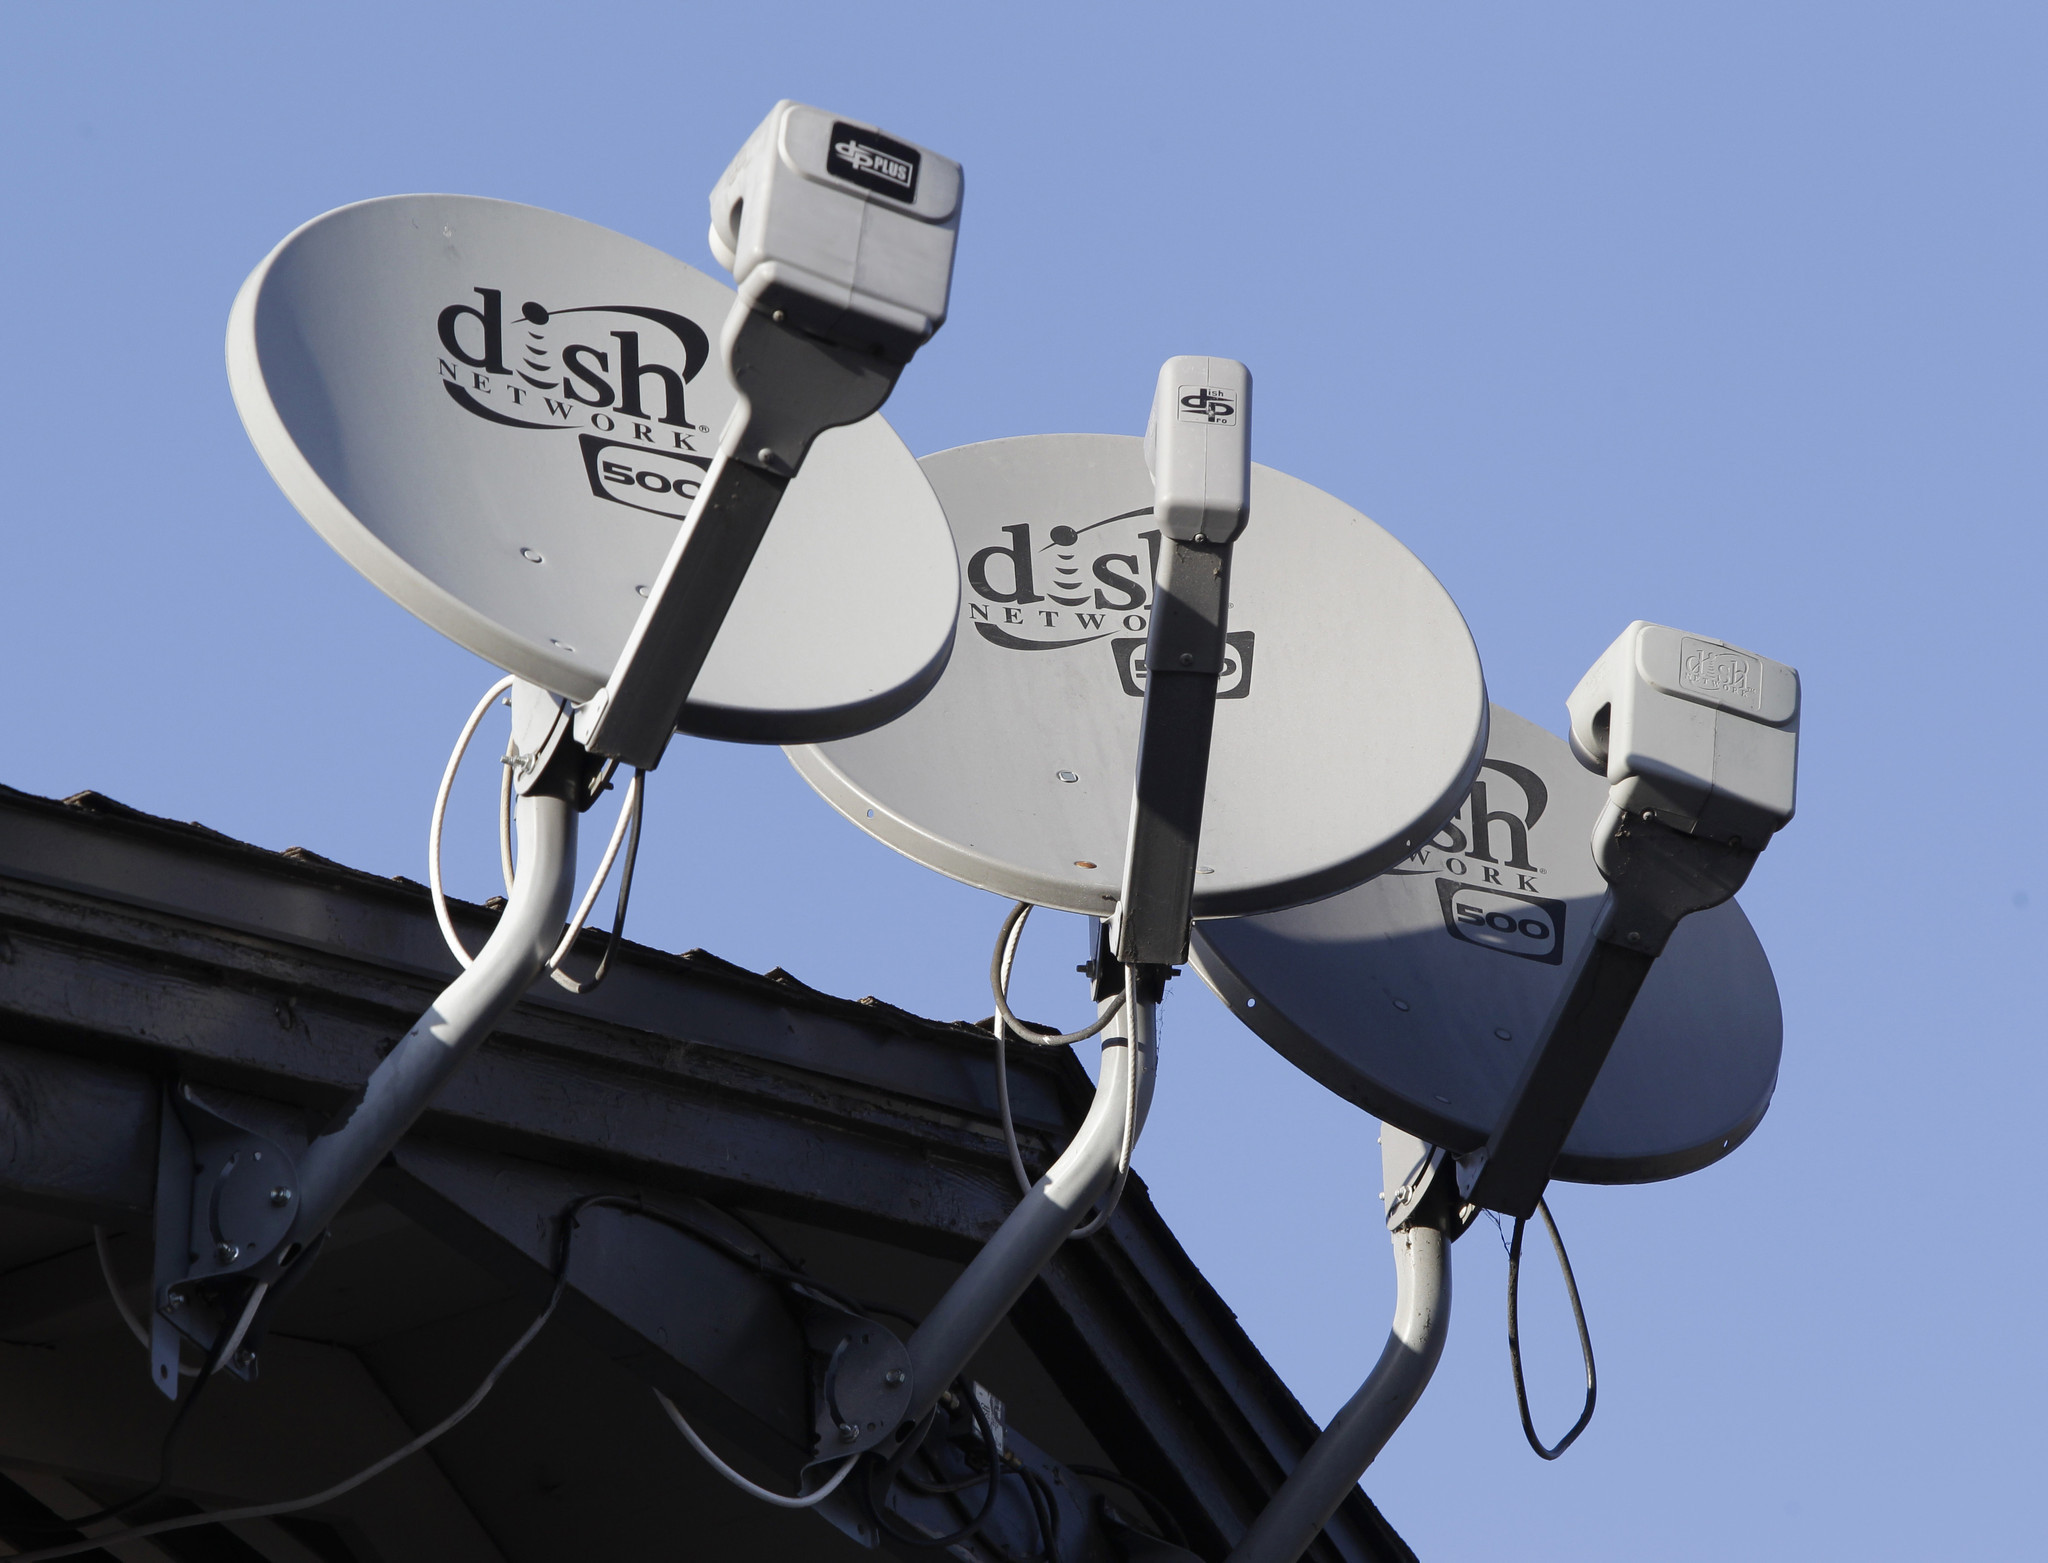 Not a sports fan? Dish Network lets subscribers drop ESPN, cutting ...